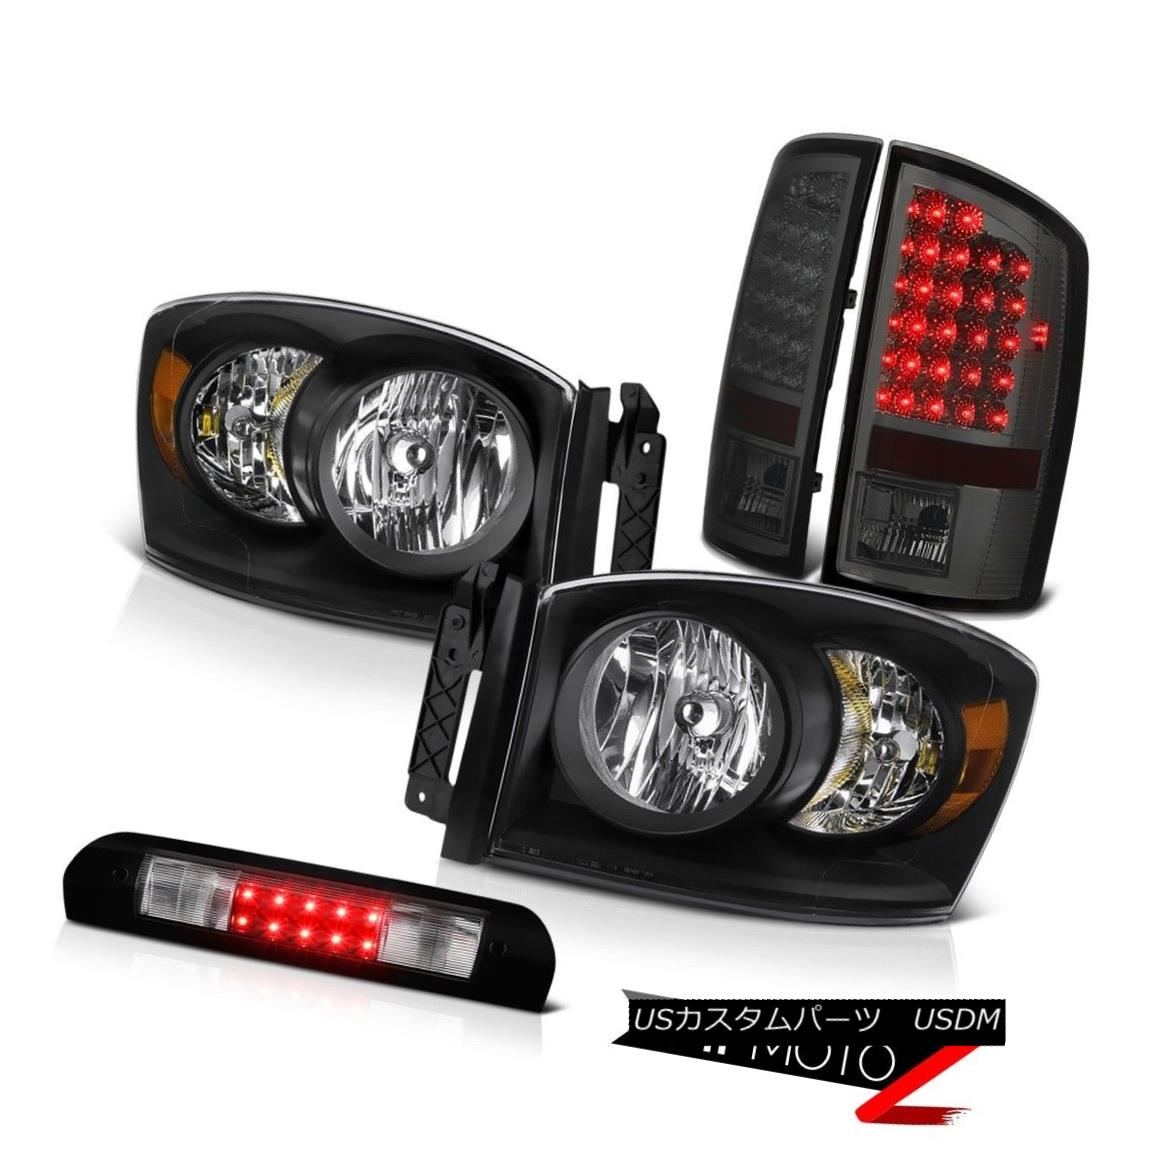 ヘッドライト 2006 Dodge Ram 2500 3500 Inky Black Headlights Smoke LED Tail Lamps 3rd Brake 2006 Dodge Ram 2500 3500 Inky BlackヘッドライトスモークLEDテールランプ3rdブレーキ